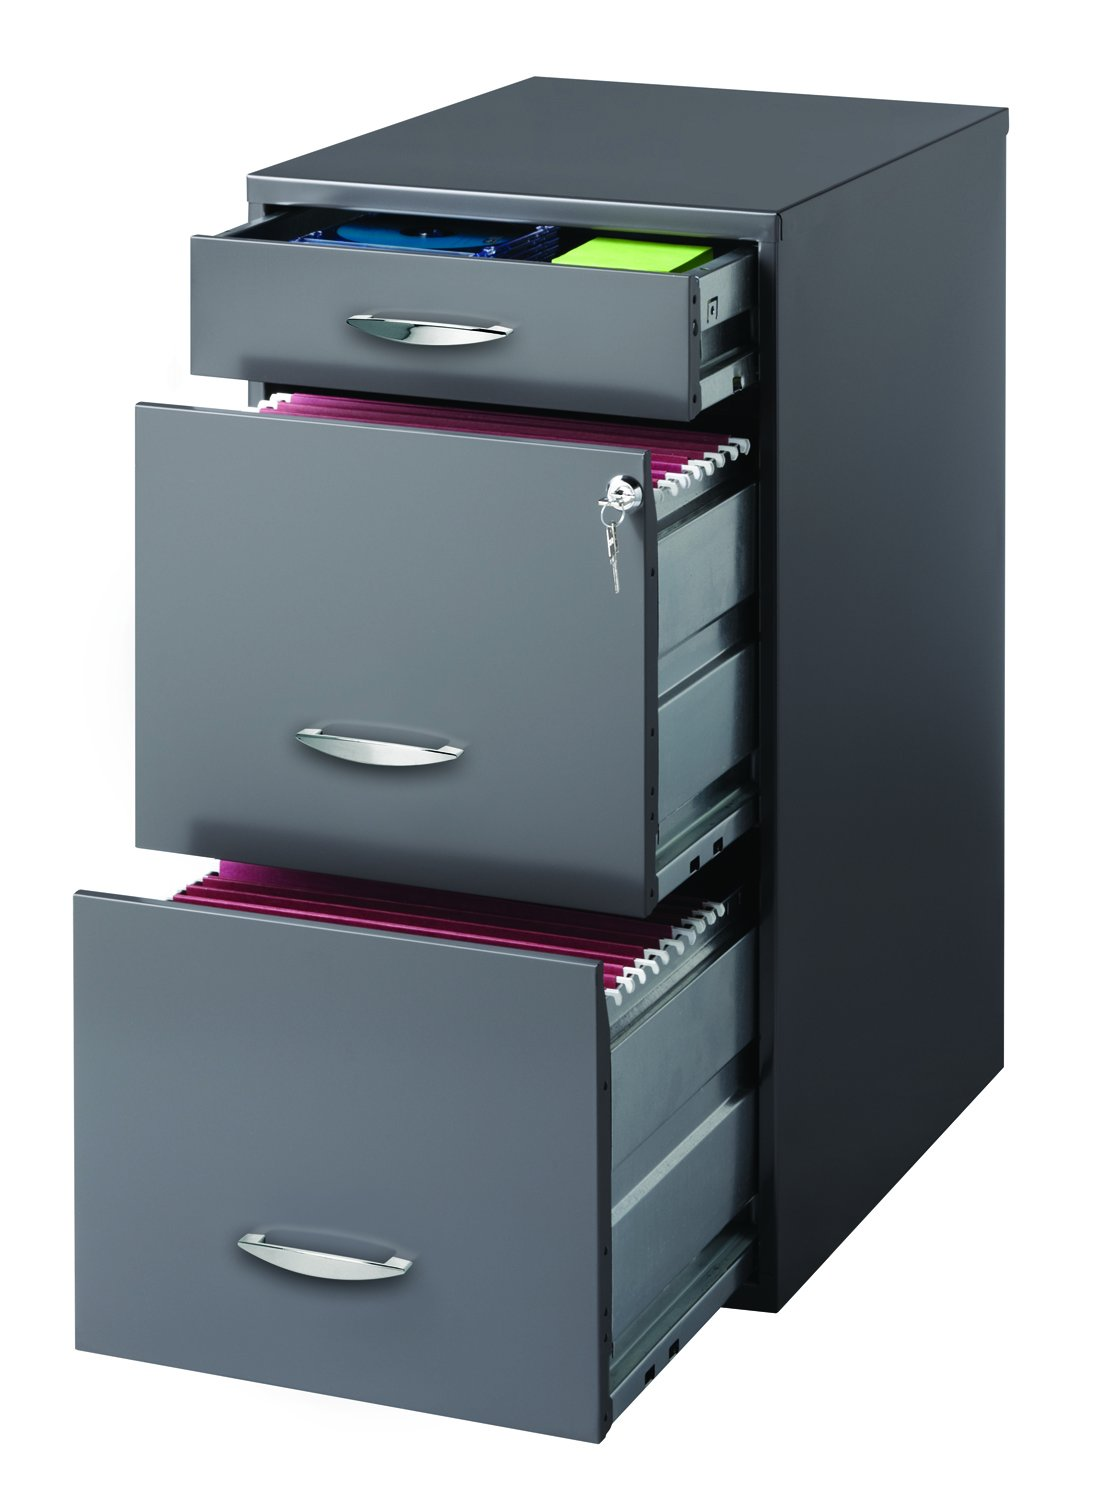 Top 10 Under Desk Office Drawers and Cabinet (2020)